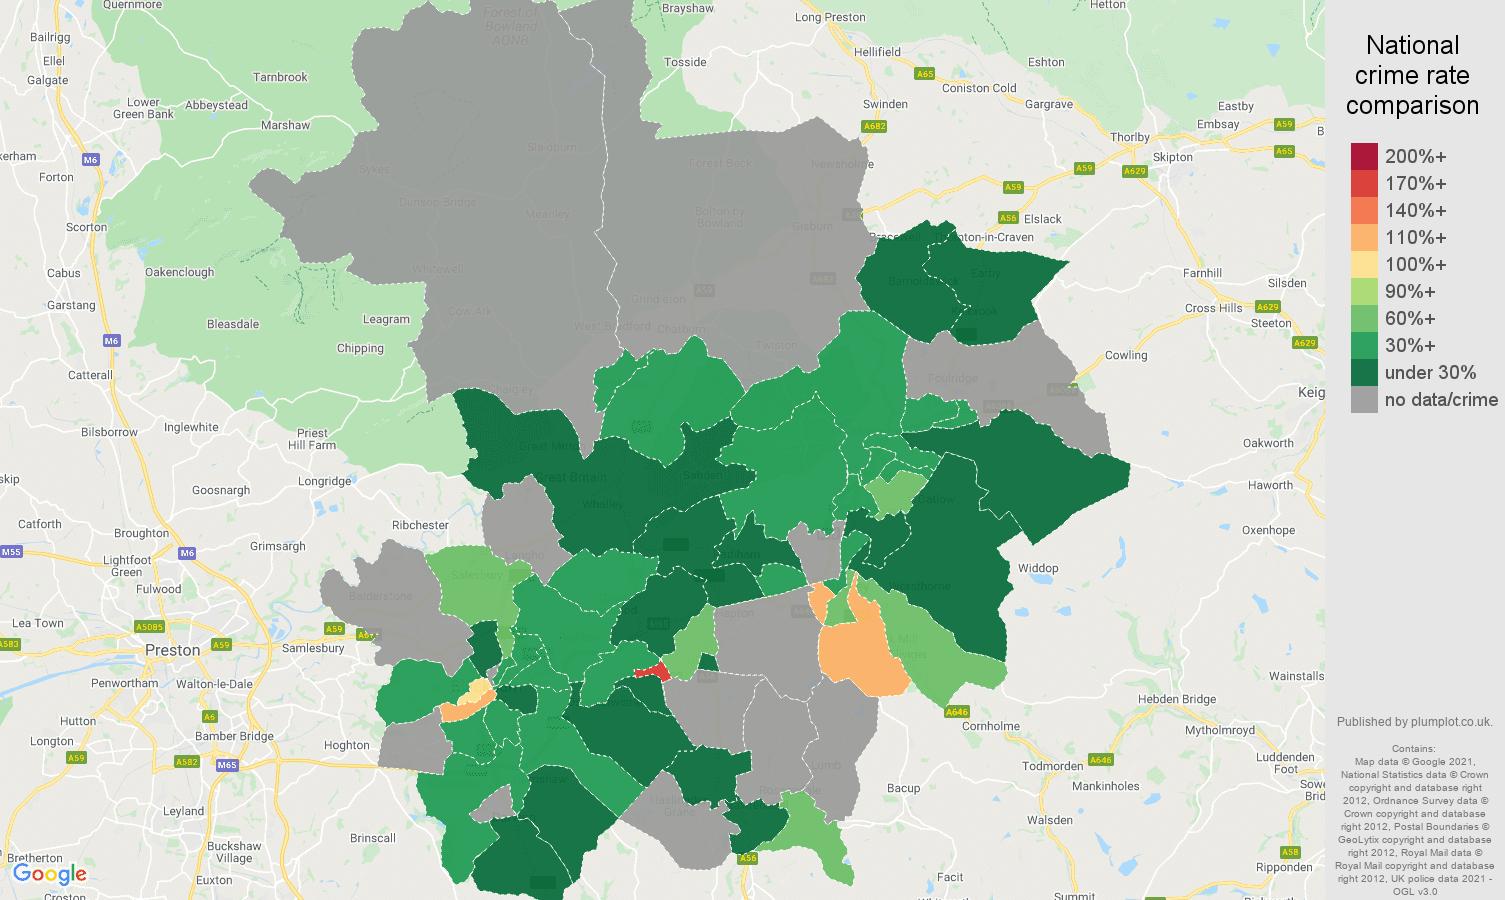 Blackburn theft from the person crime rate comparison map